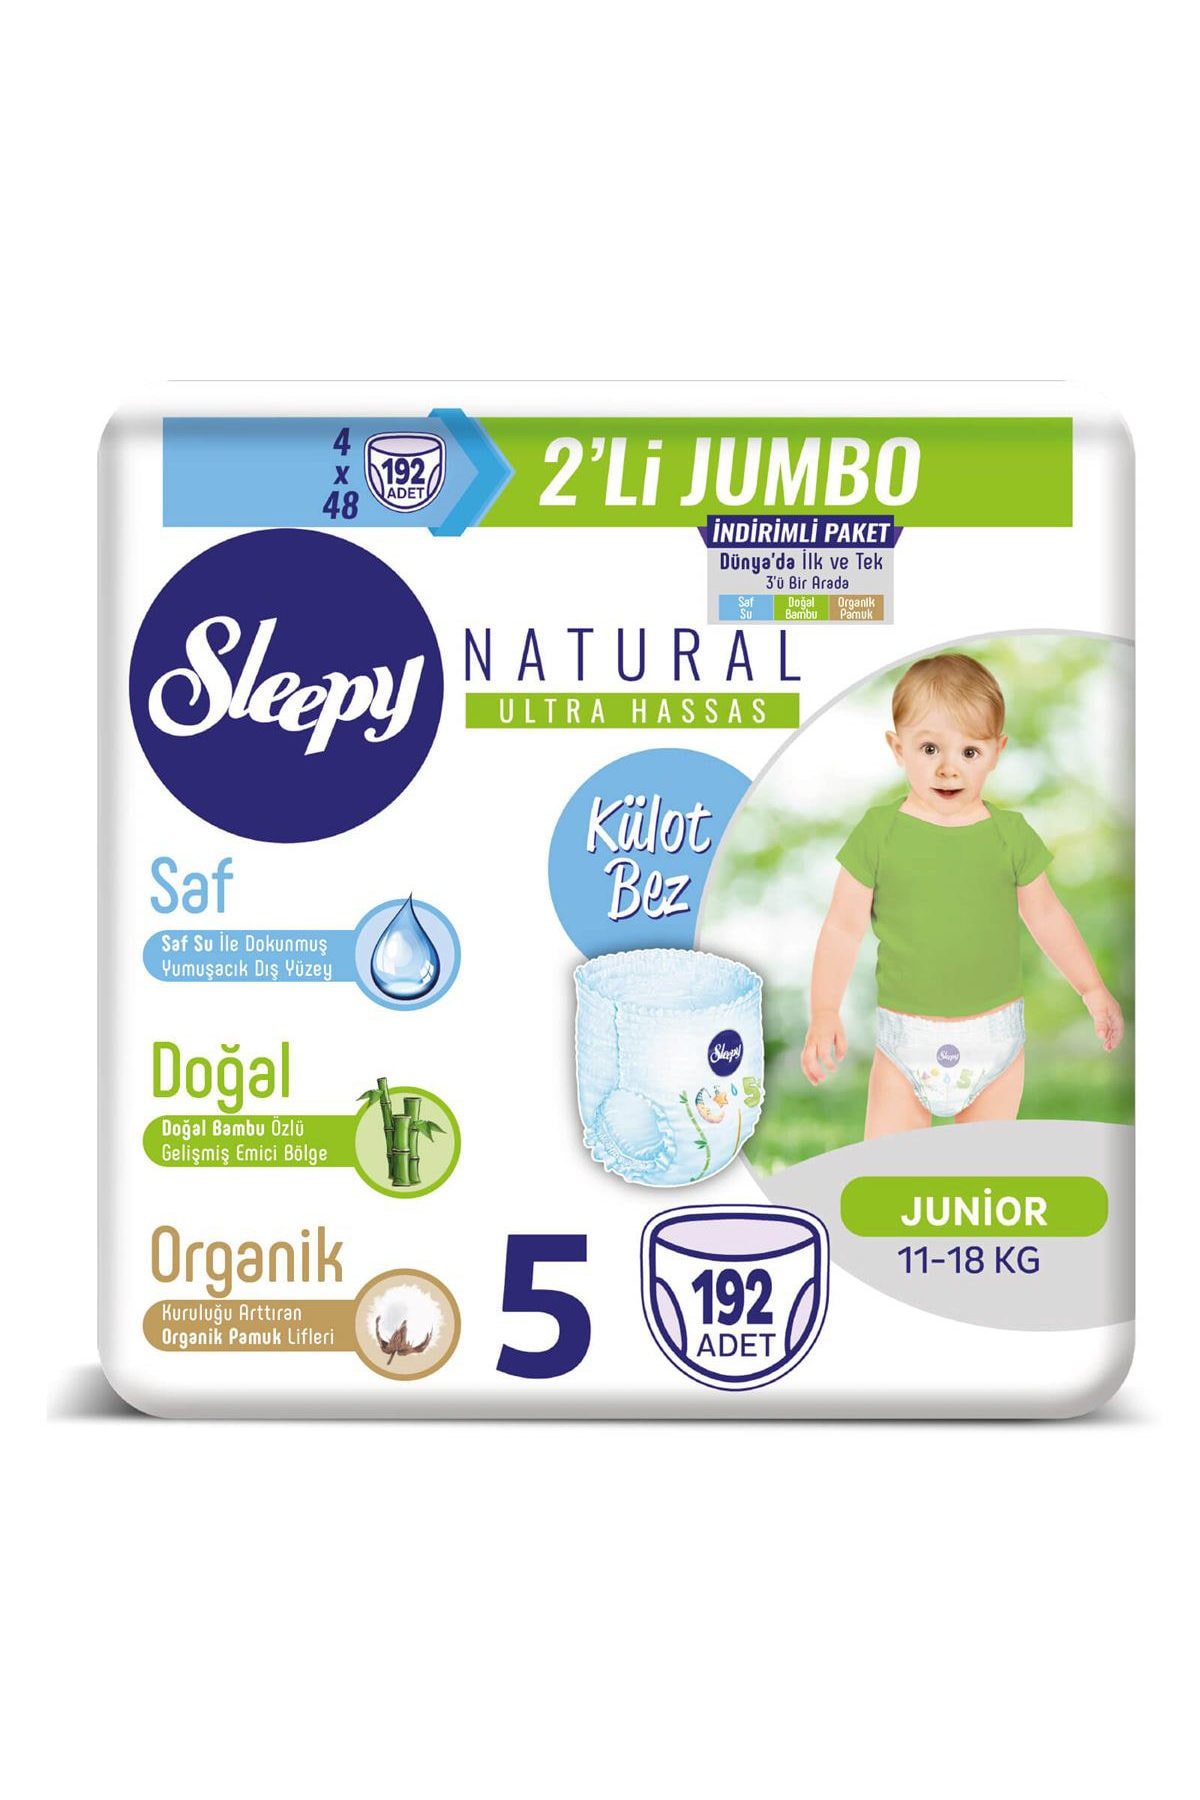 Sleepy Natural Külot Bez 5 Beden Junior 4X2'li Jumbo 192 Adet 1